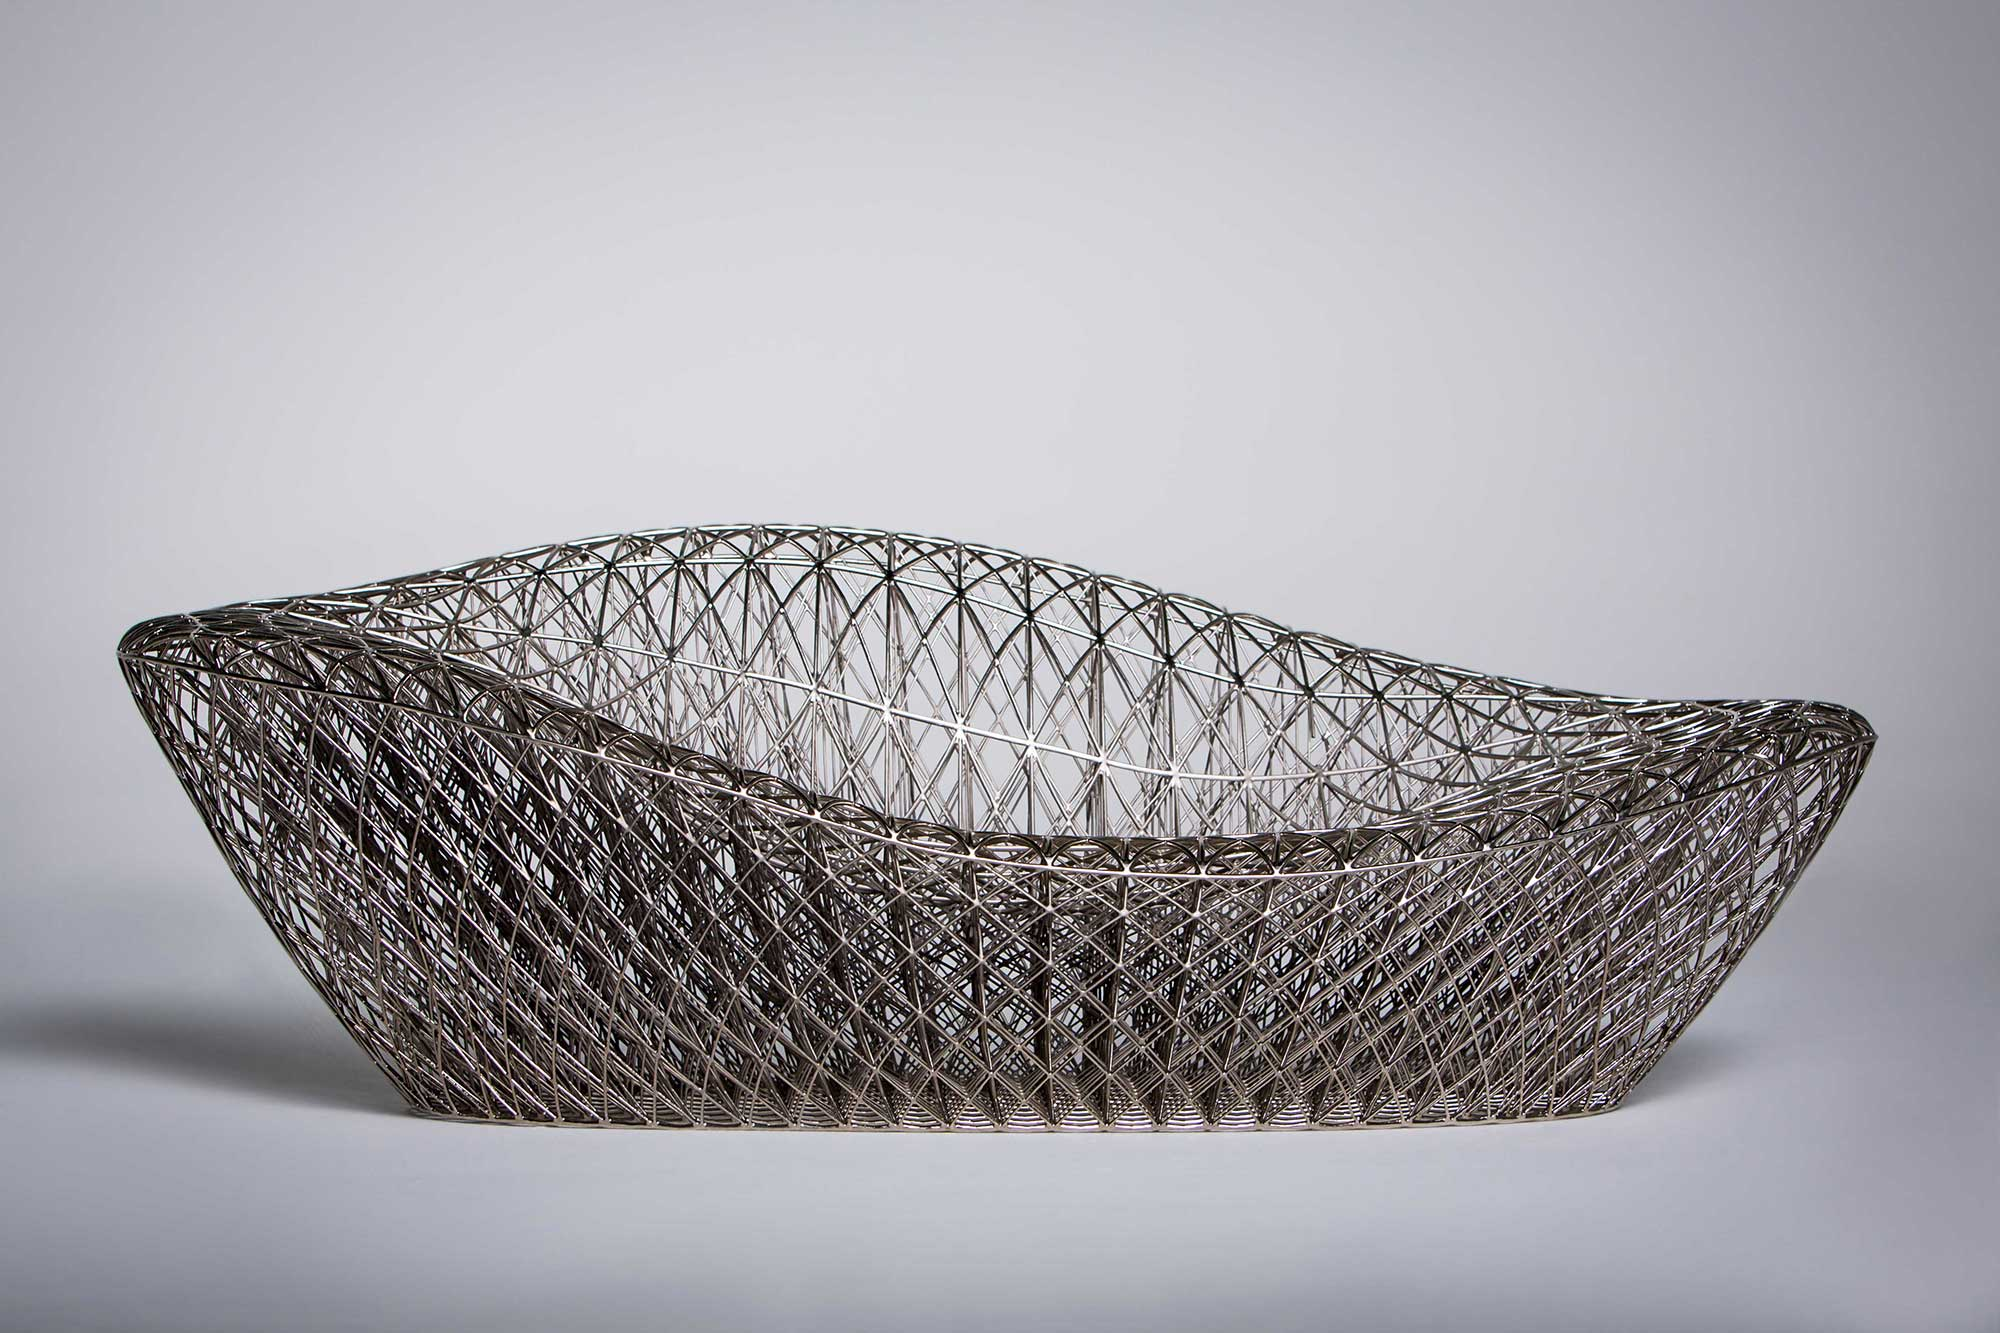 Sofa so good is finnish janne kyttanen 39 s latest 3d printed for Furniture 3d printer